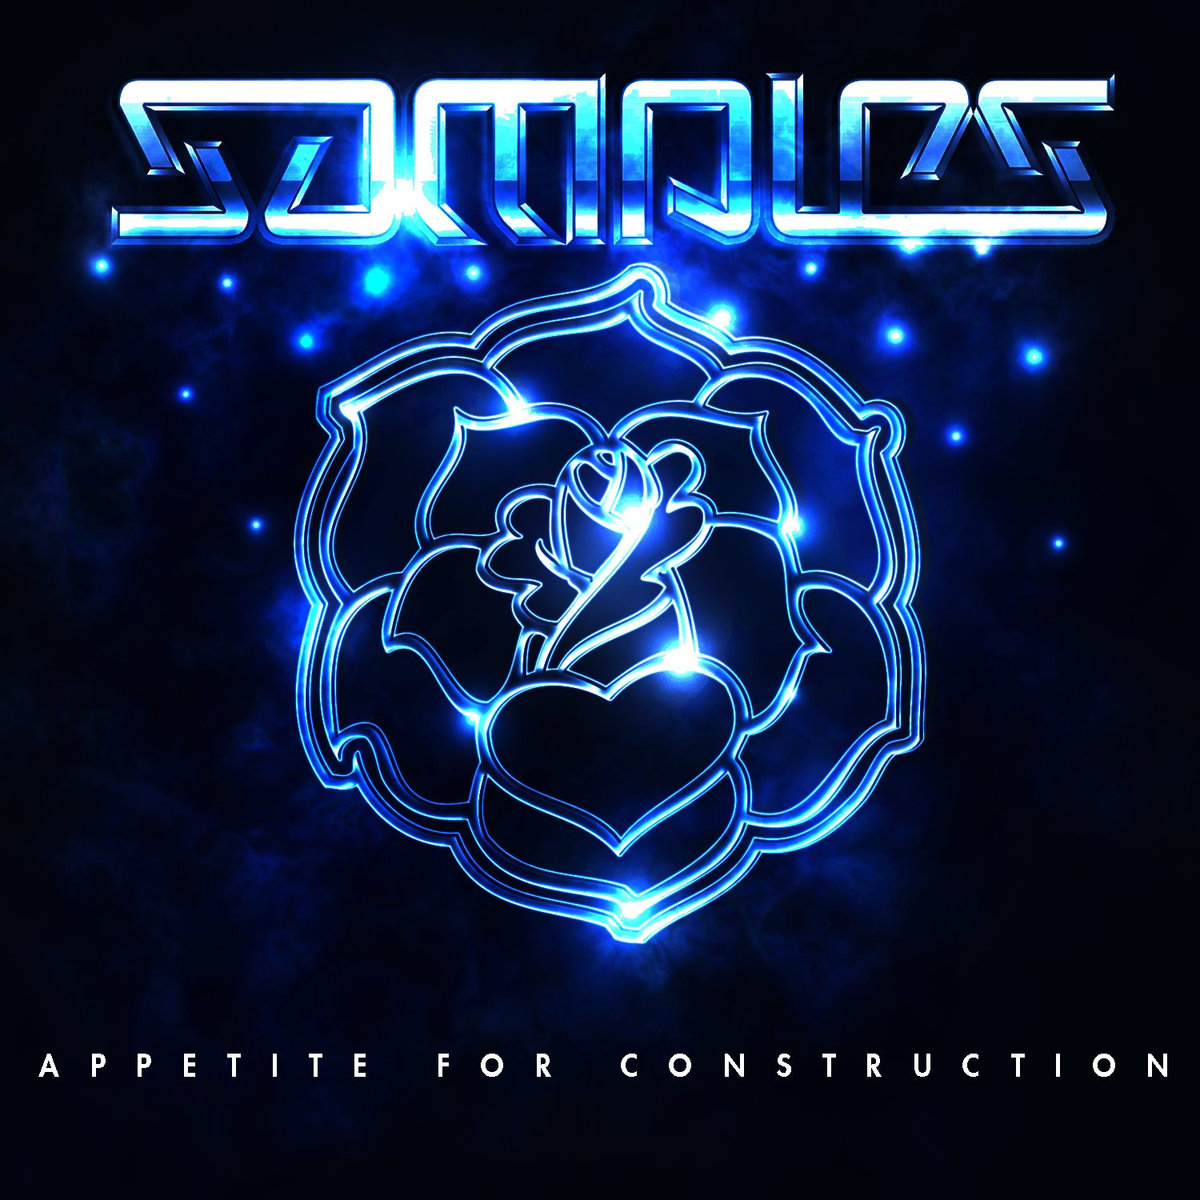 Samples - Corporate @ 'Appetite for Construction' album (electronic, dubstep)